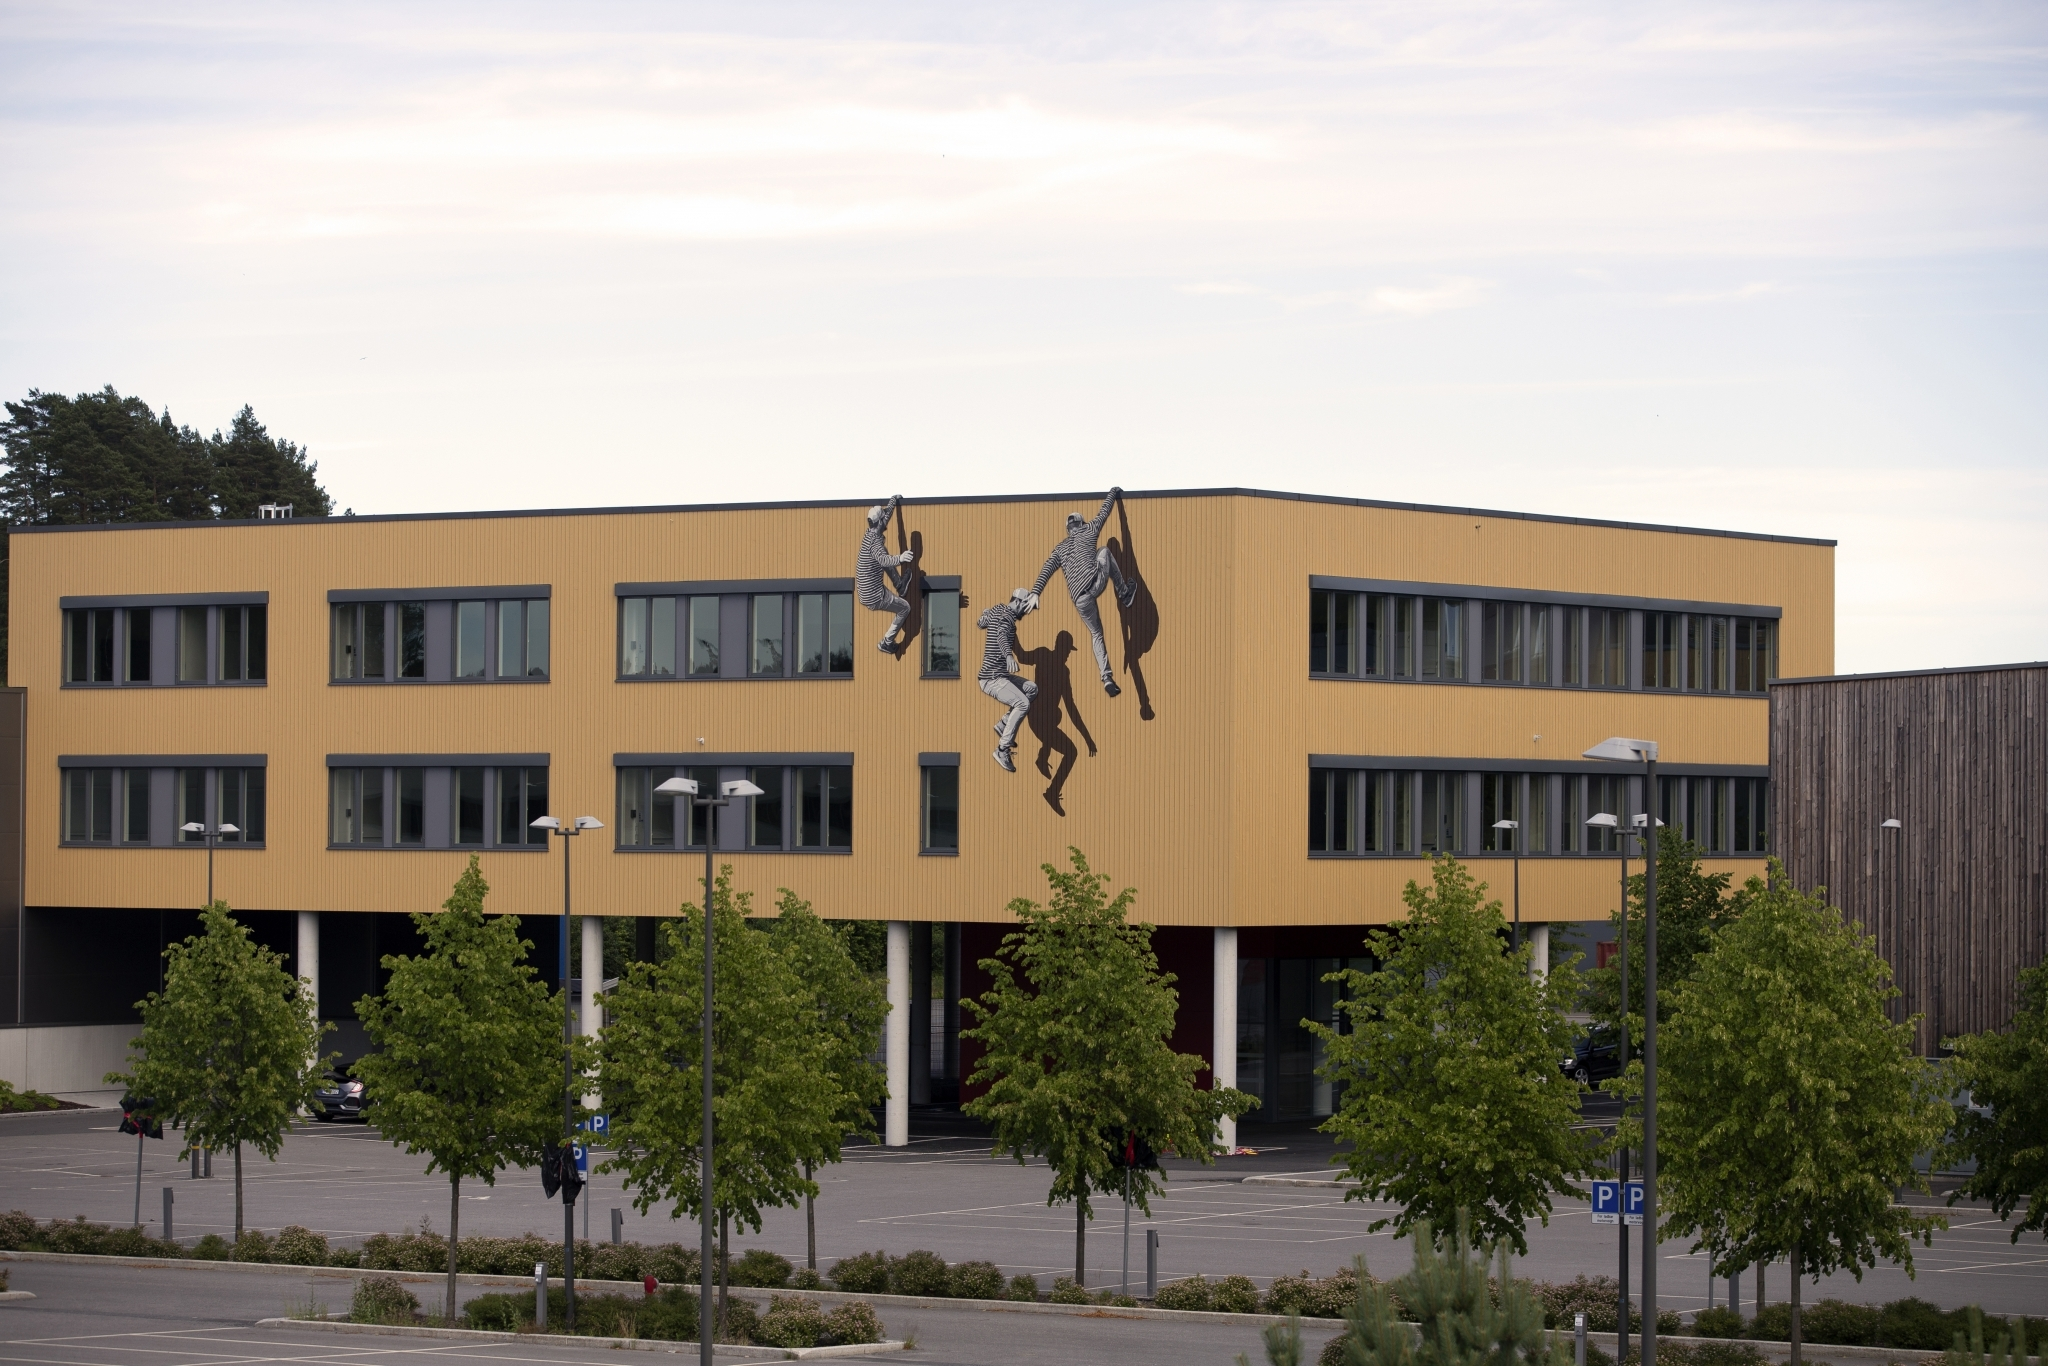 The artist uses shadows with his figures to play with depth whether on eroding buildings or adorning newly constructed offices in norway germany